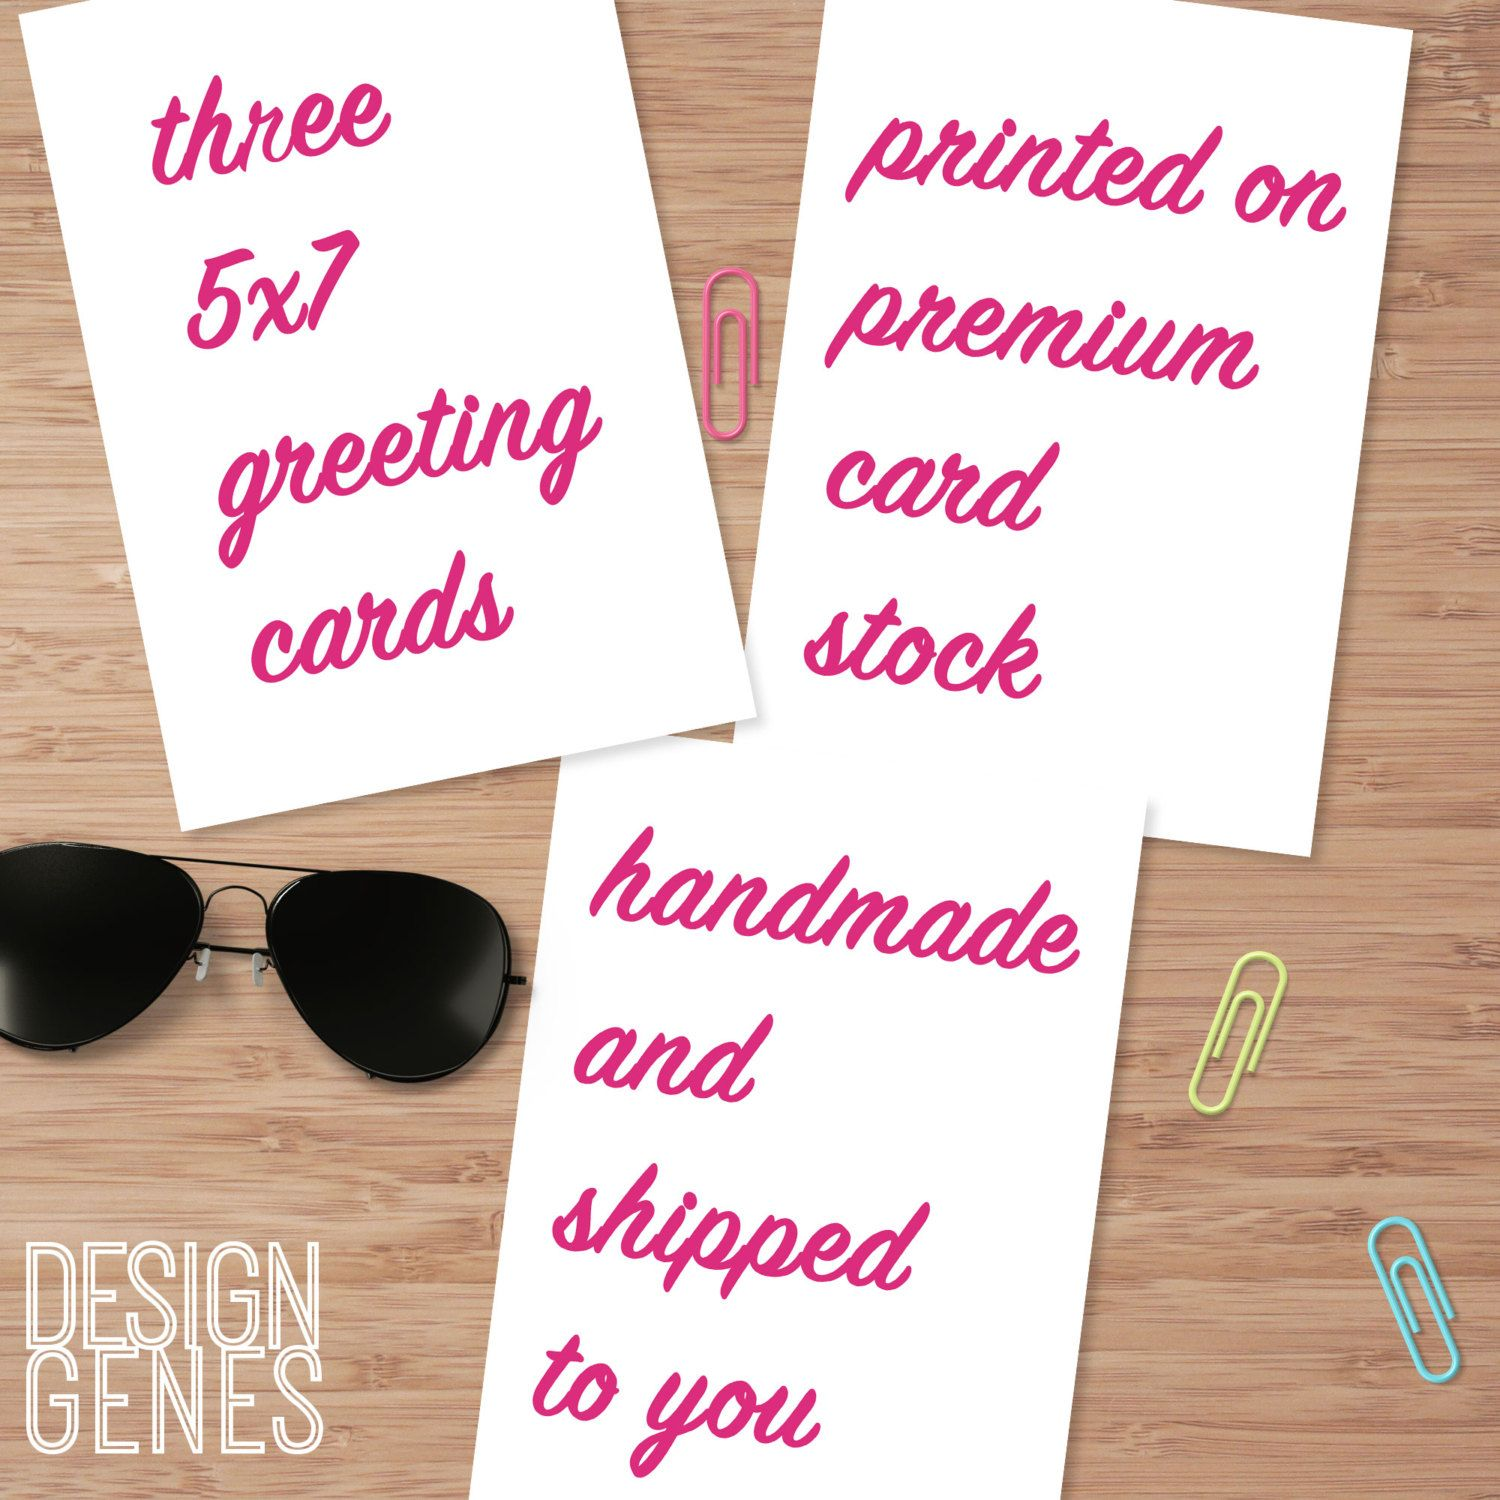 New To Designgenesstudio On Etsy Three 5x7 Handmade Greeting Cards